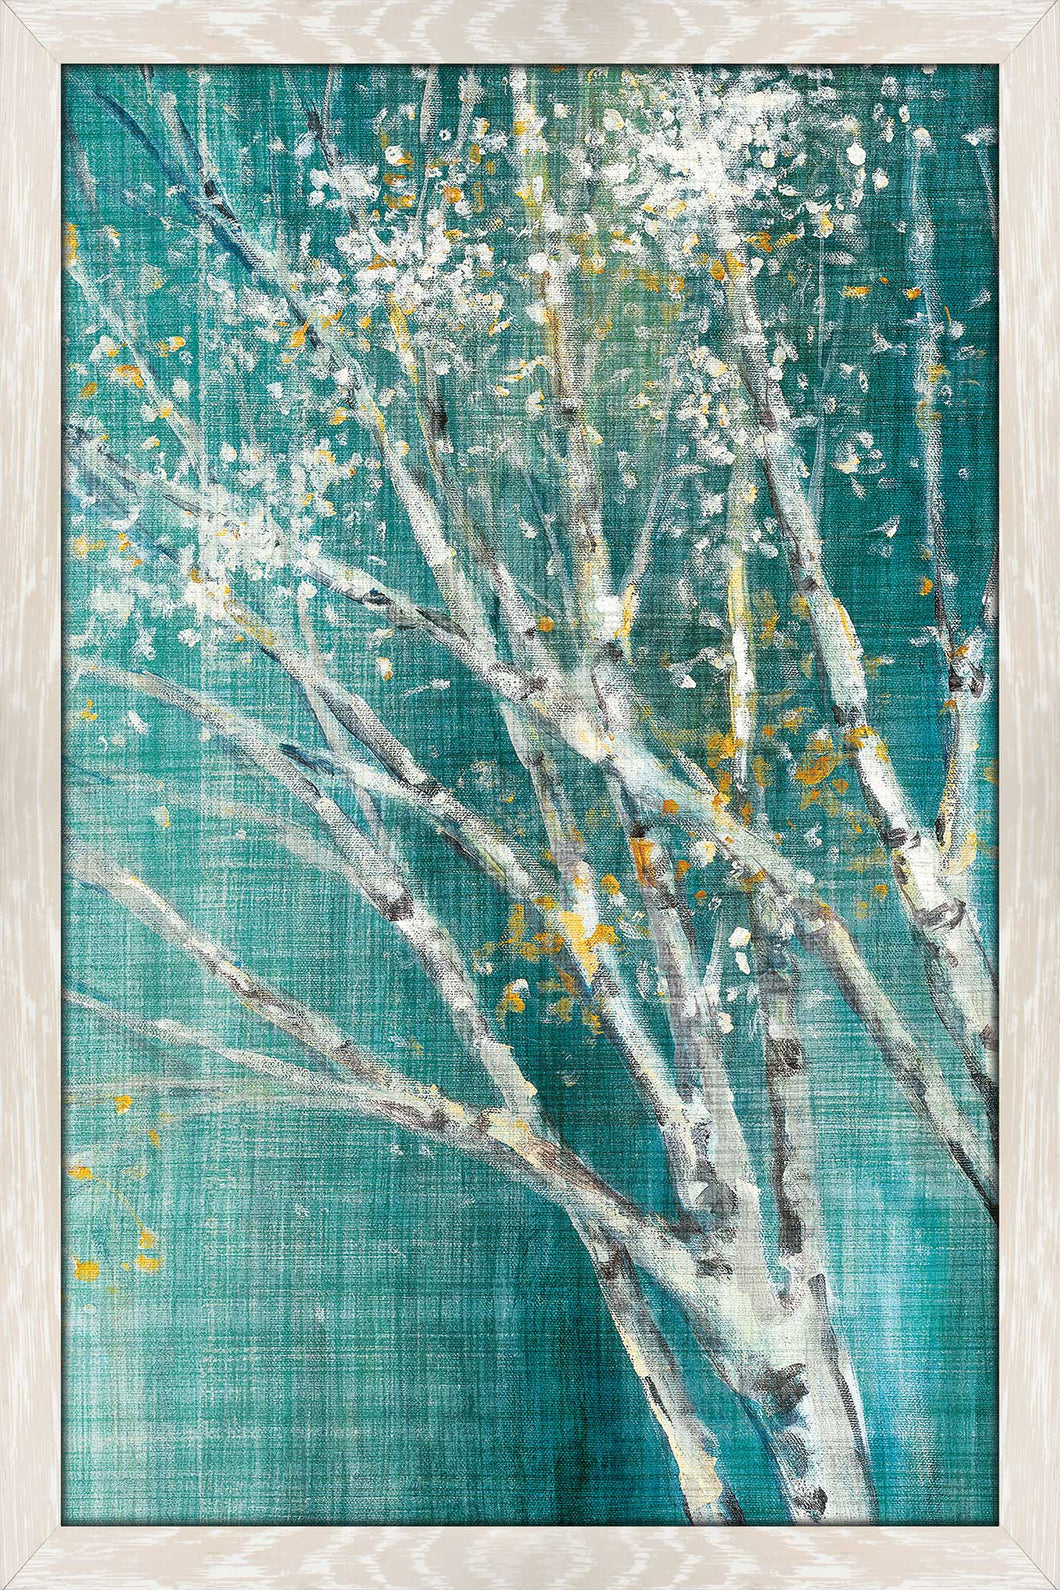 Blue Birch Horizontal III by Julia Purinton Print on Acrylic Landscapes,Green art,Portrait Shape,All Acrylic Art,Julia Purington,All Subjects,All Colors,All Shapes,All Artists